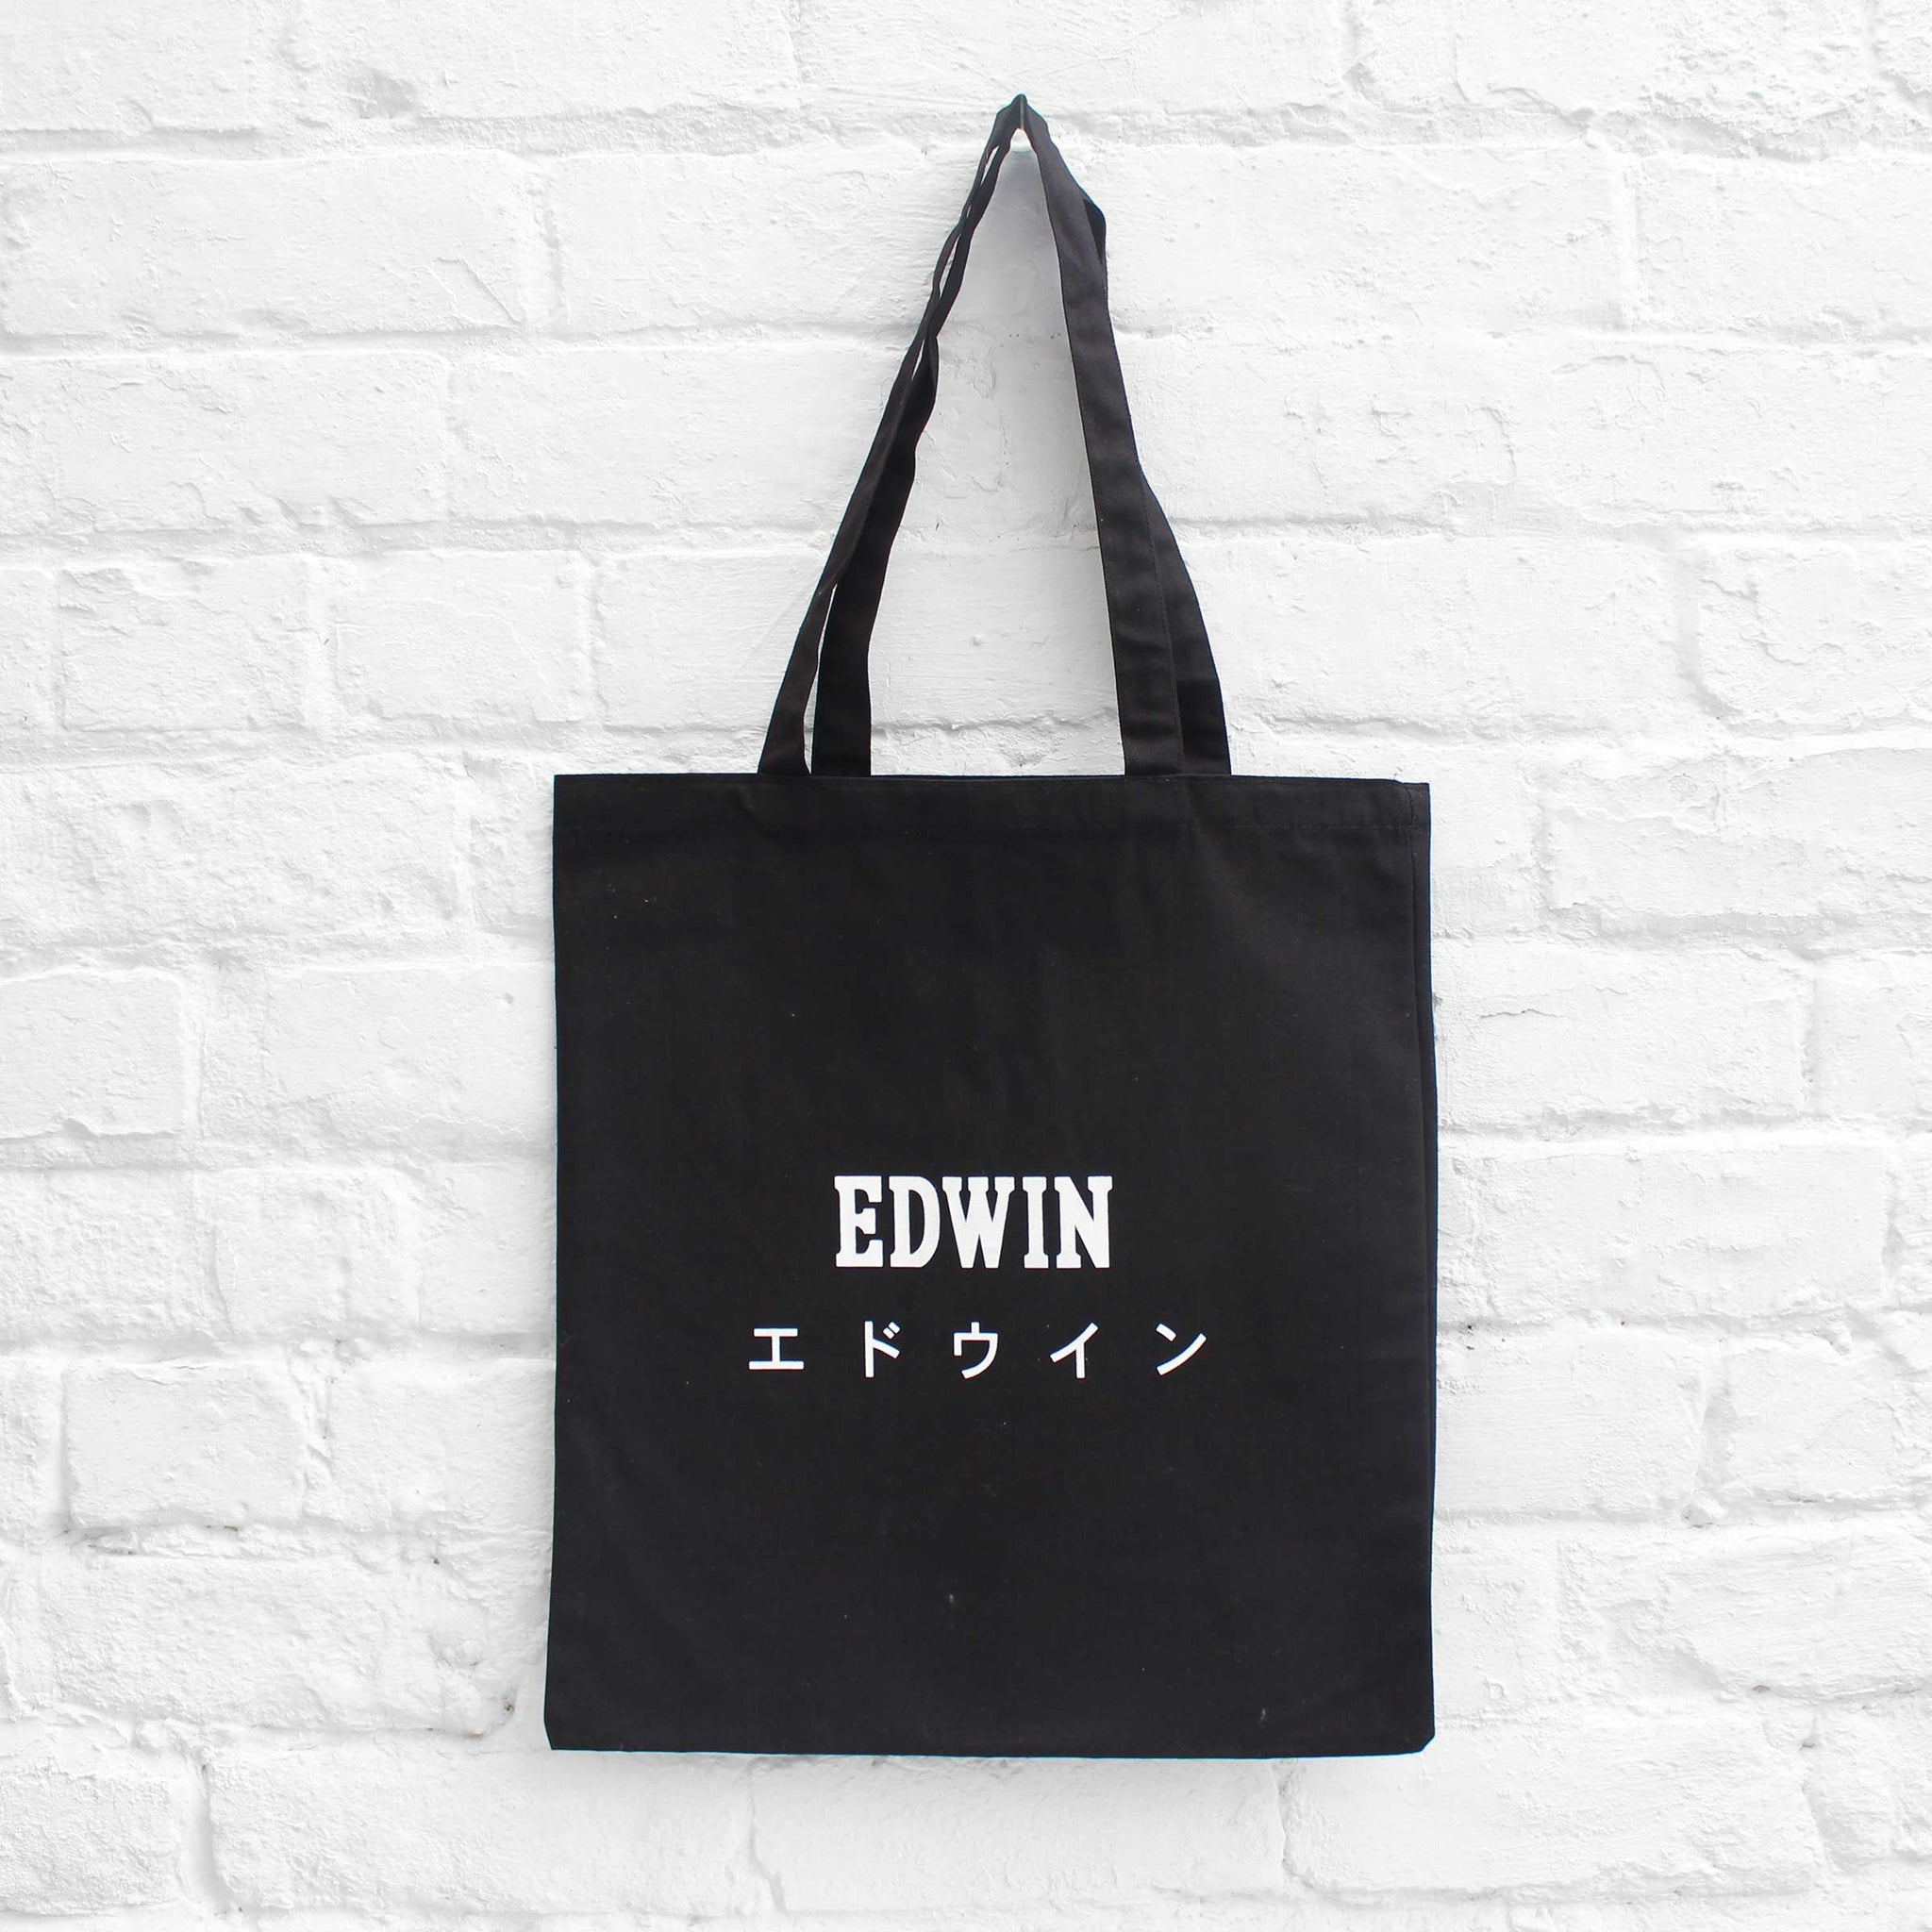 EDWIN Tote Bag Black